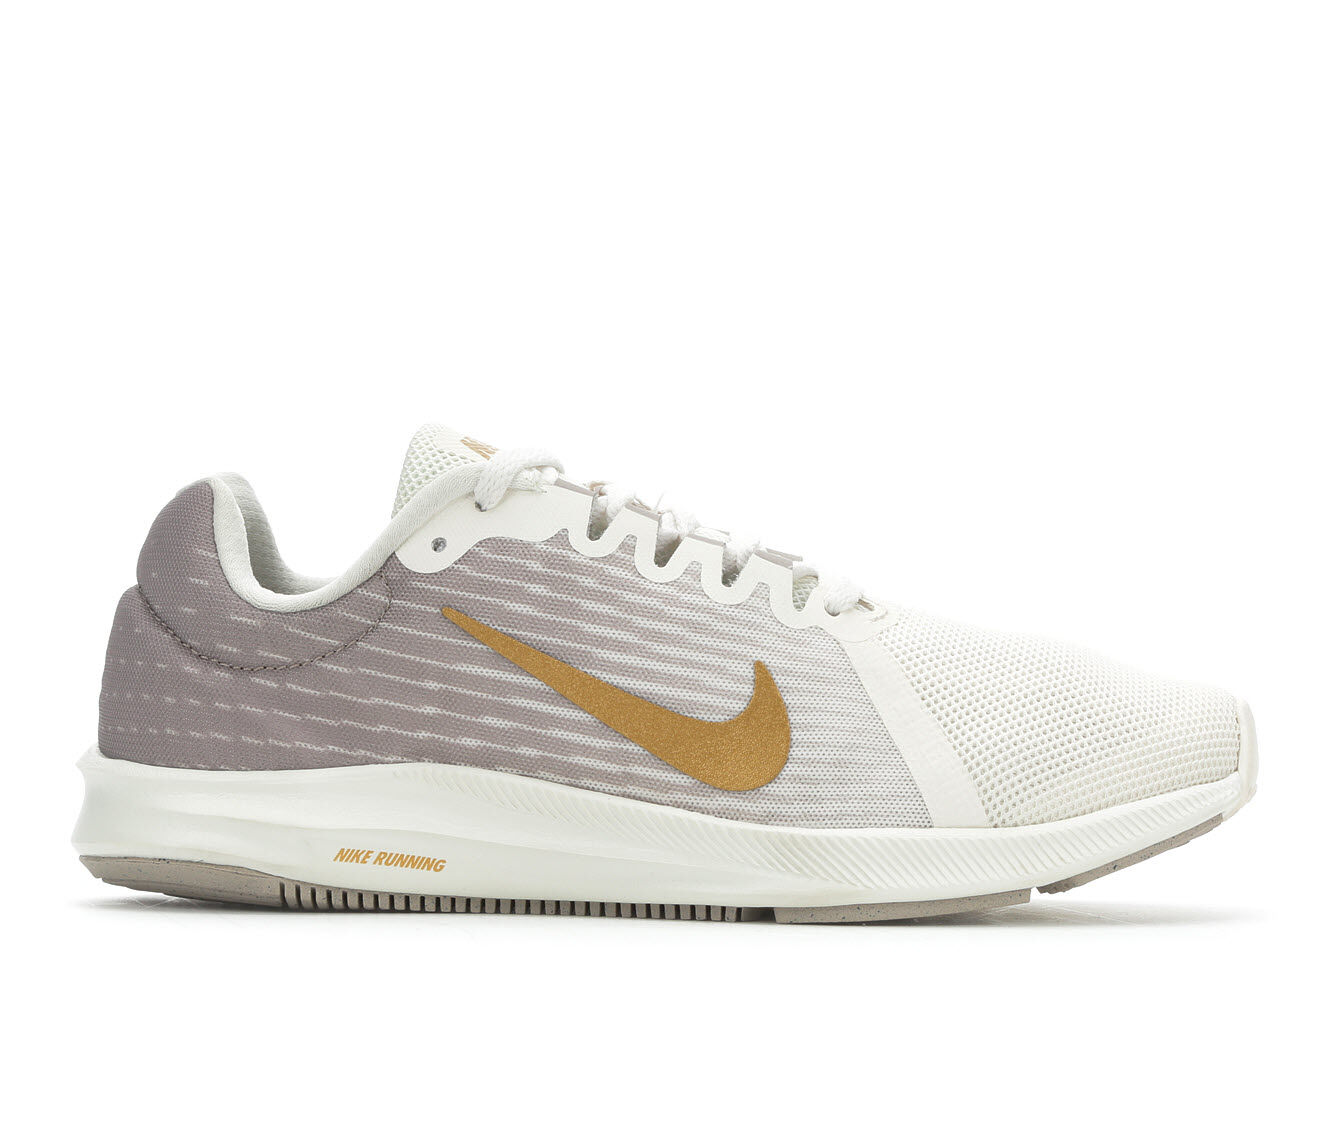 Women's Nike Downshifter 8 Running Shoes Phantom/Gold